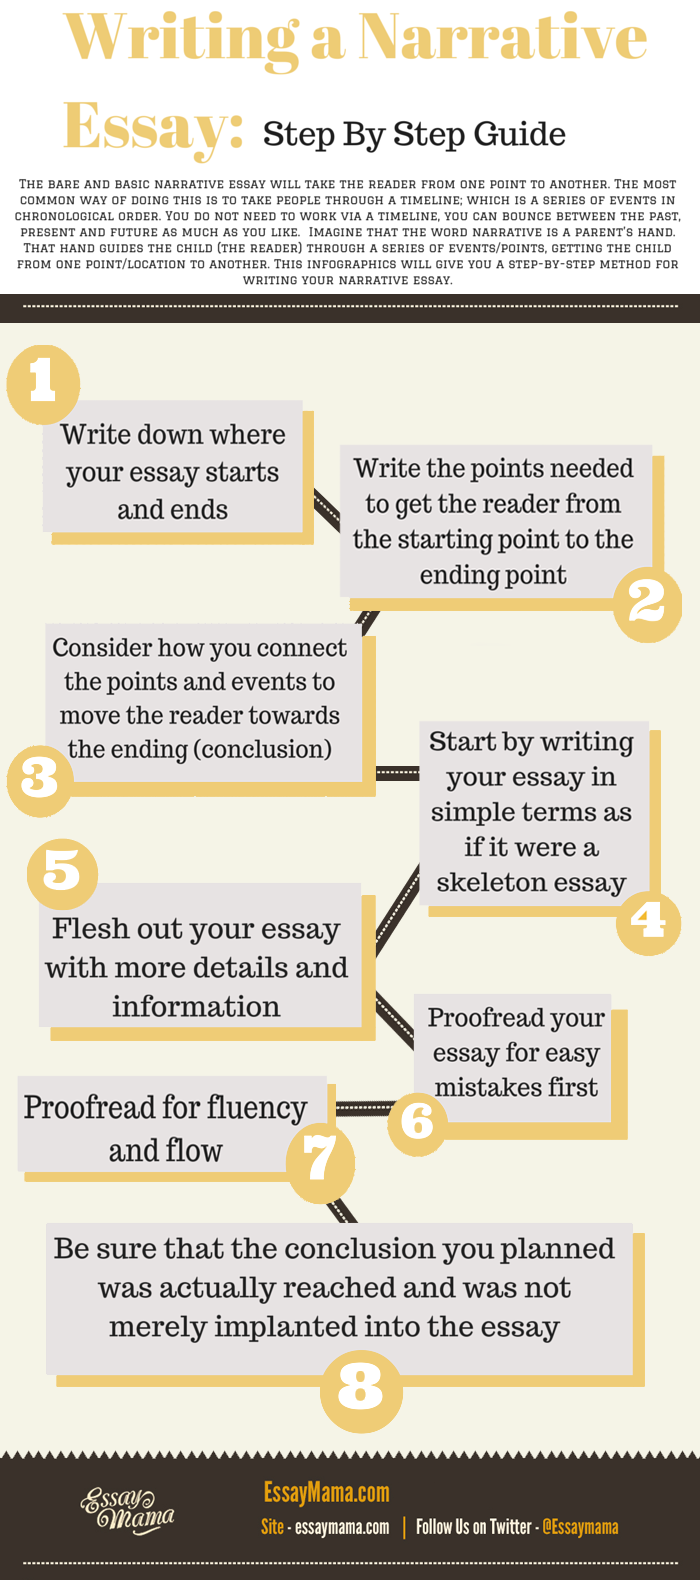 narrative essay prompts for elementary Literary analysis essay sonny blues narrative essay prompts elementary write papers for money cheap proposal and dissertation help writing services.